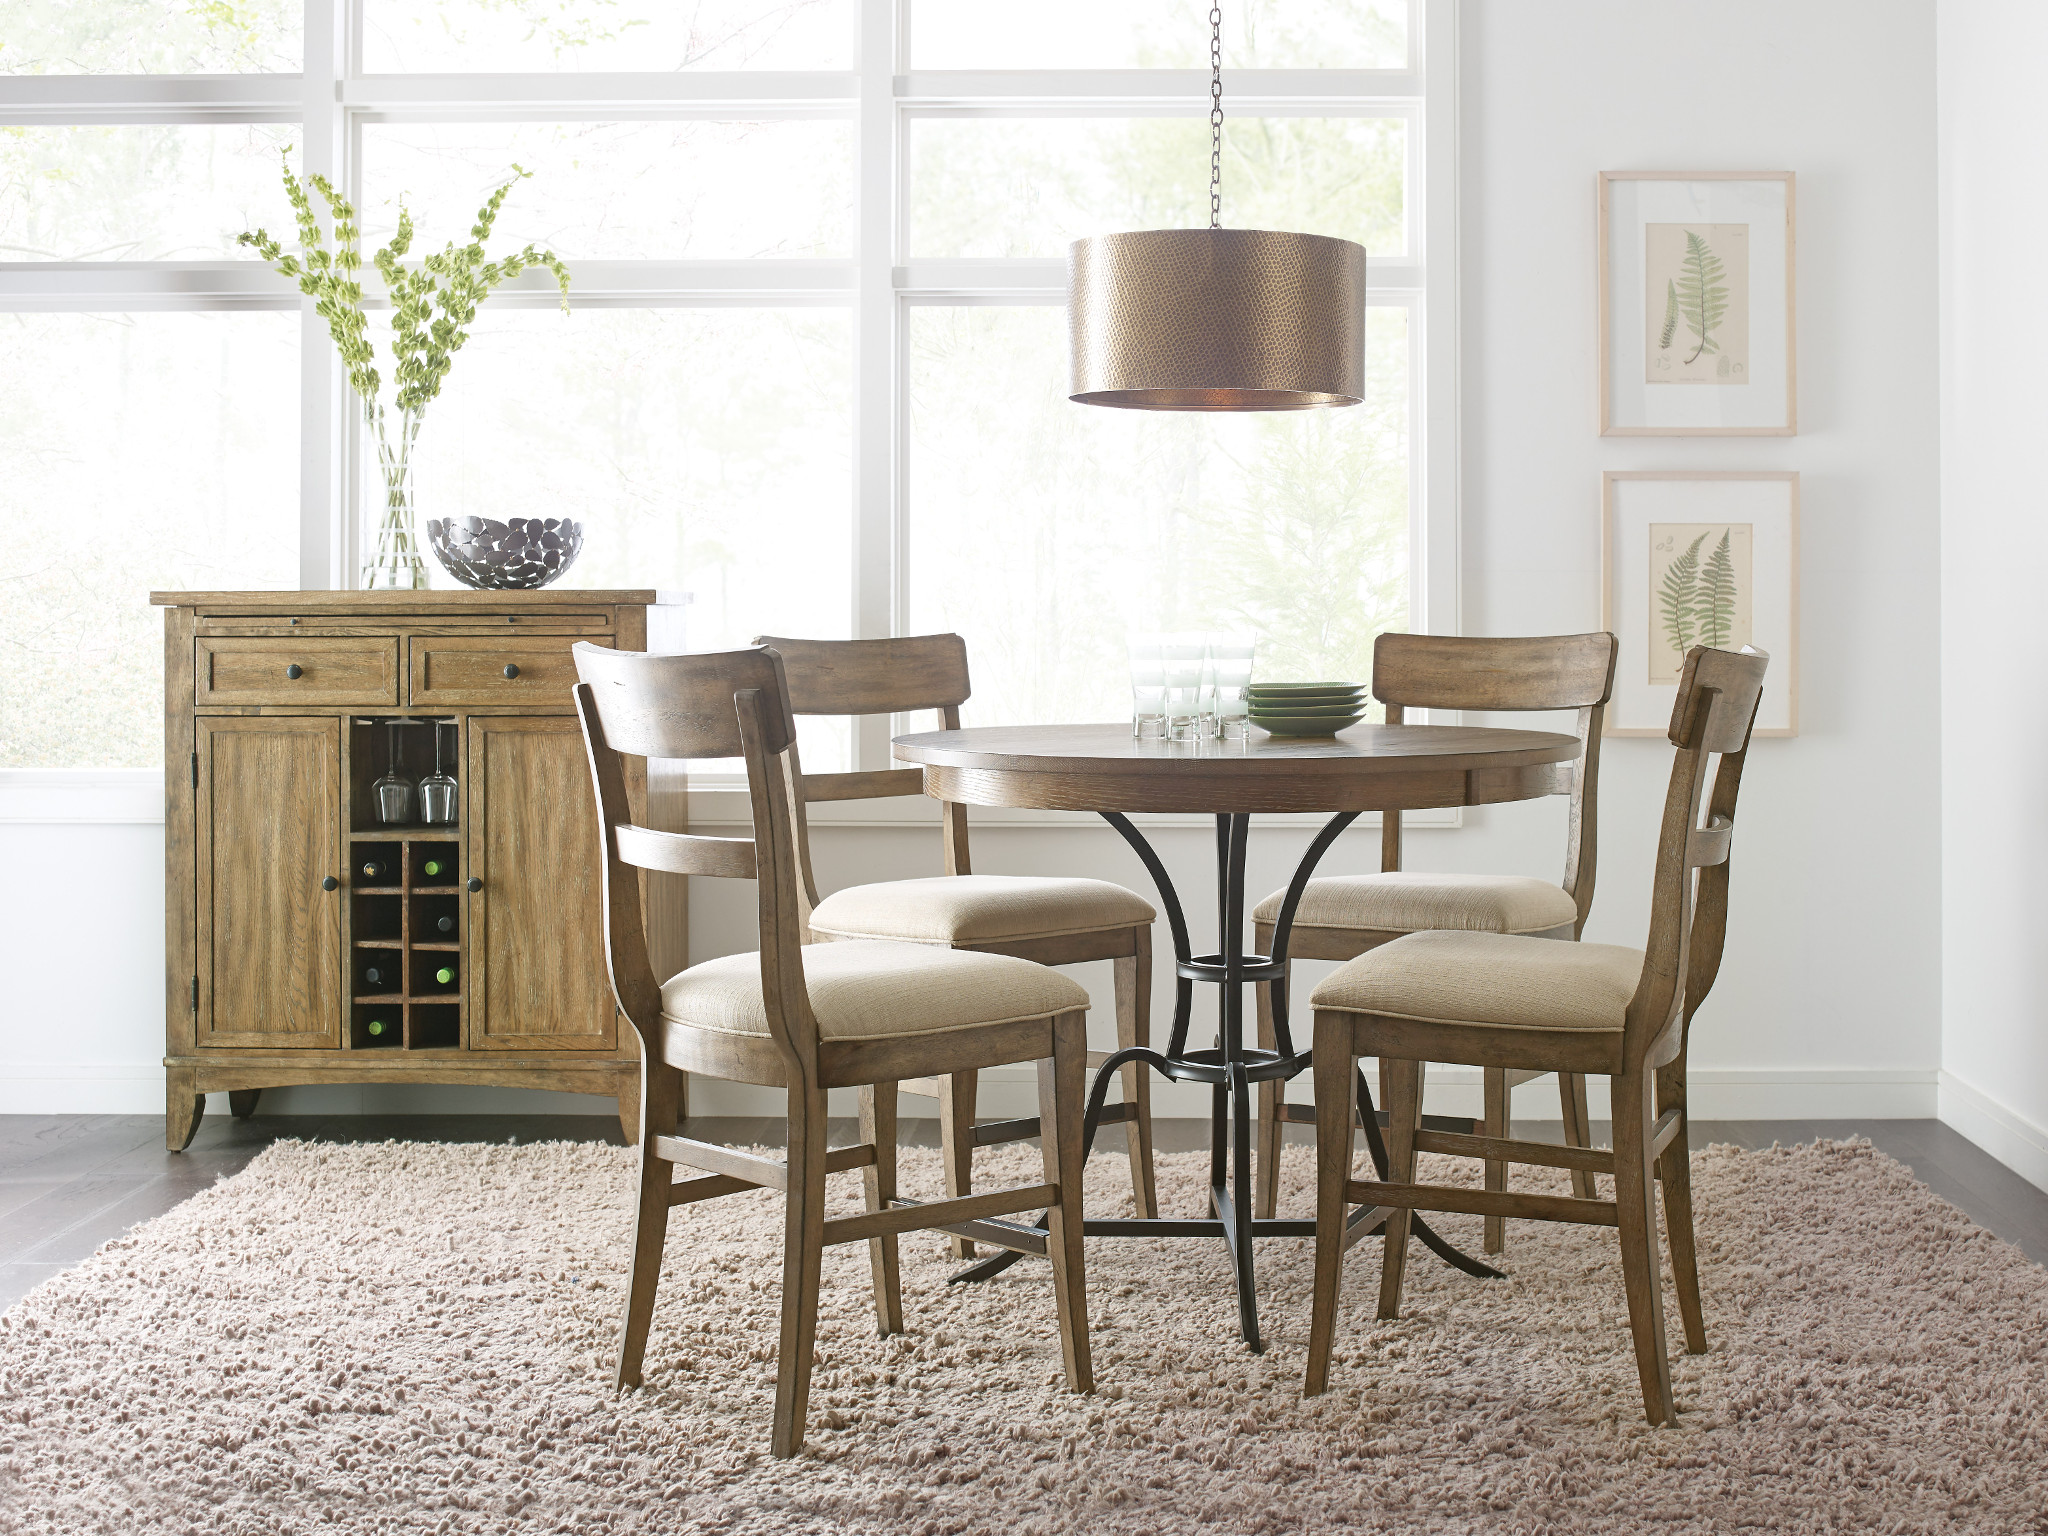 Chattanooga Kitchen Table Ideas Kincaid counter height table from EF Brannon Furniture store in Chattanooga TN